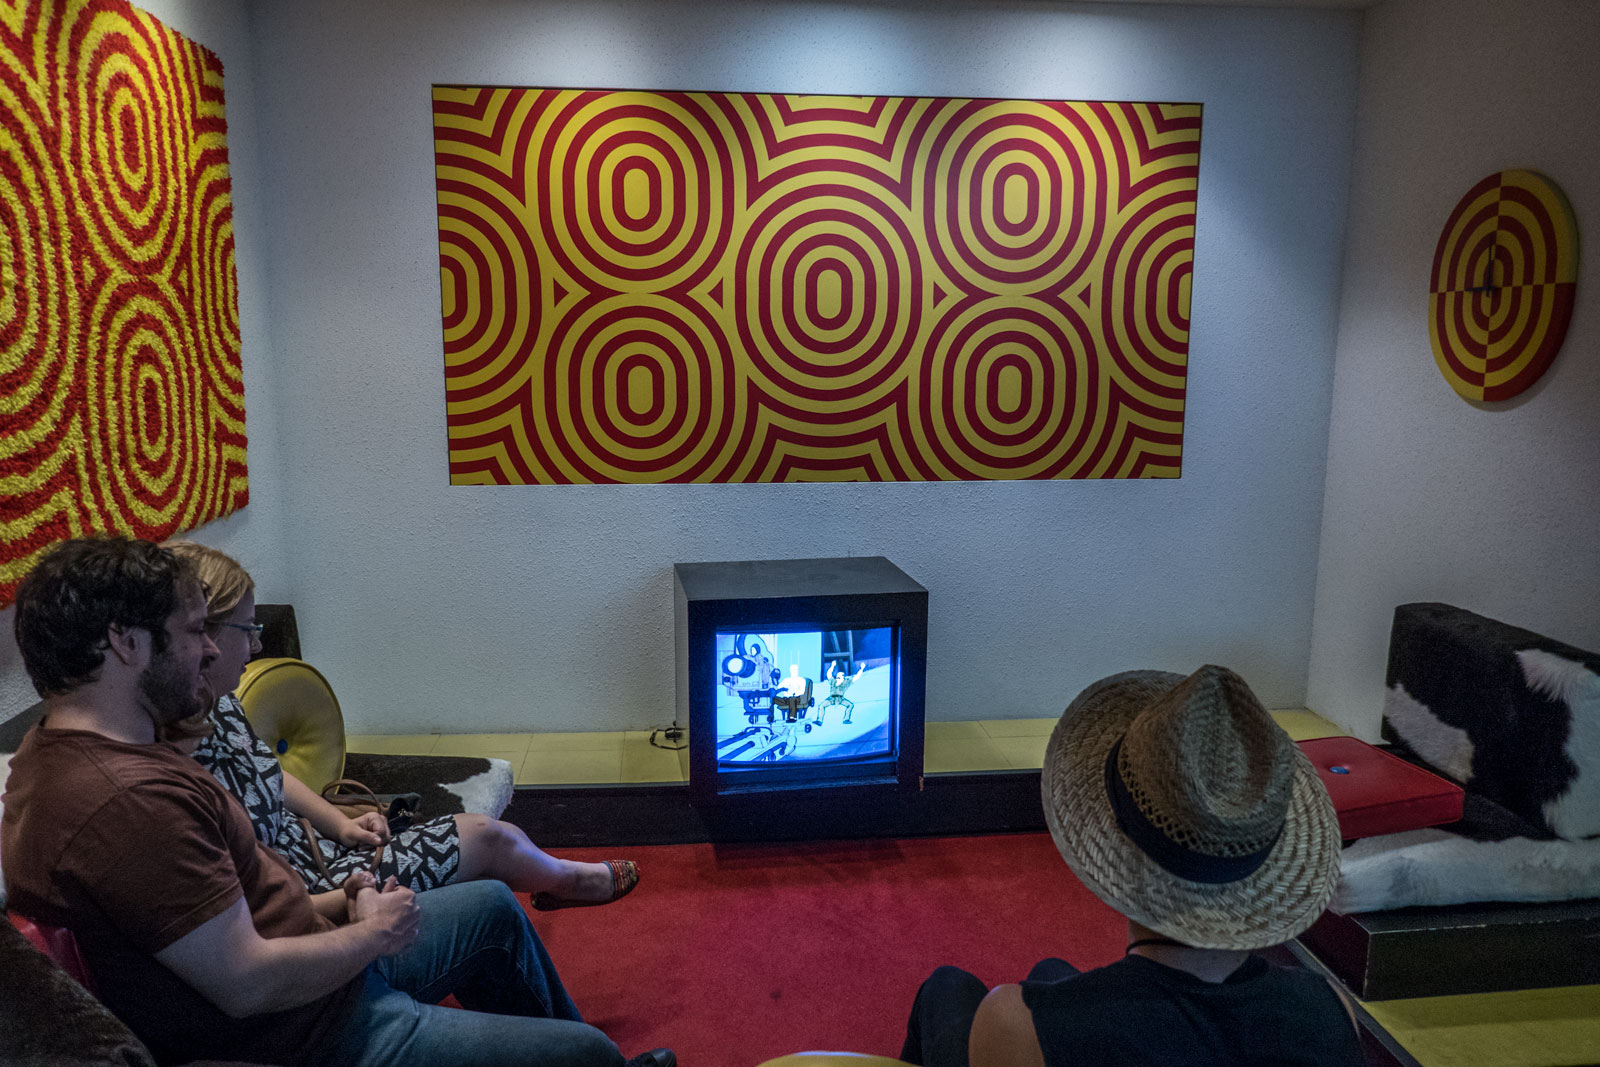 watching TV during an airport layover